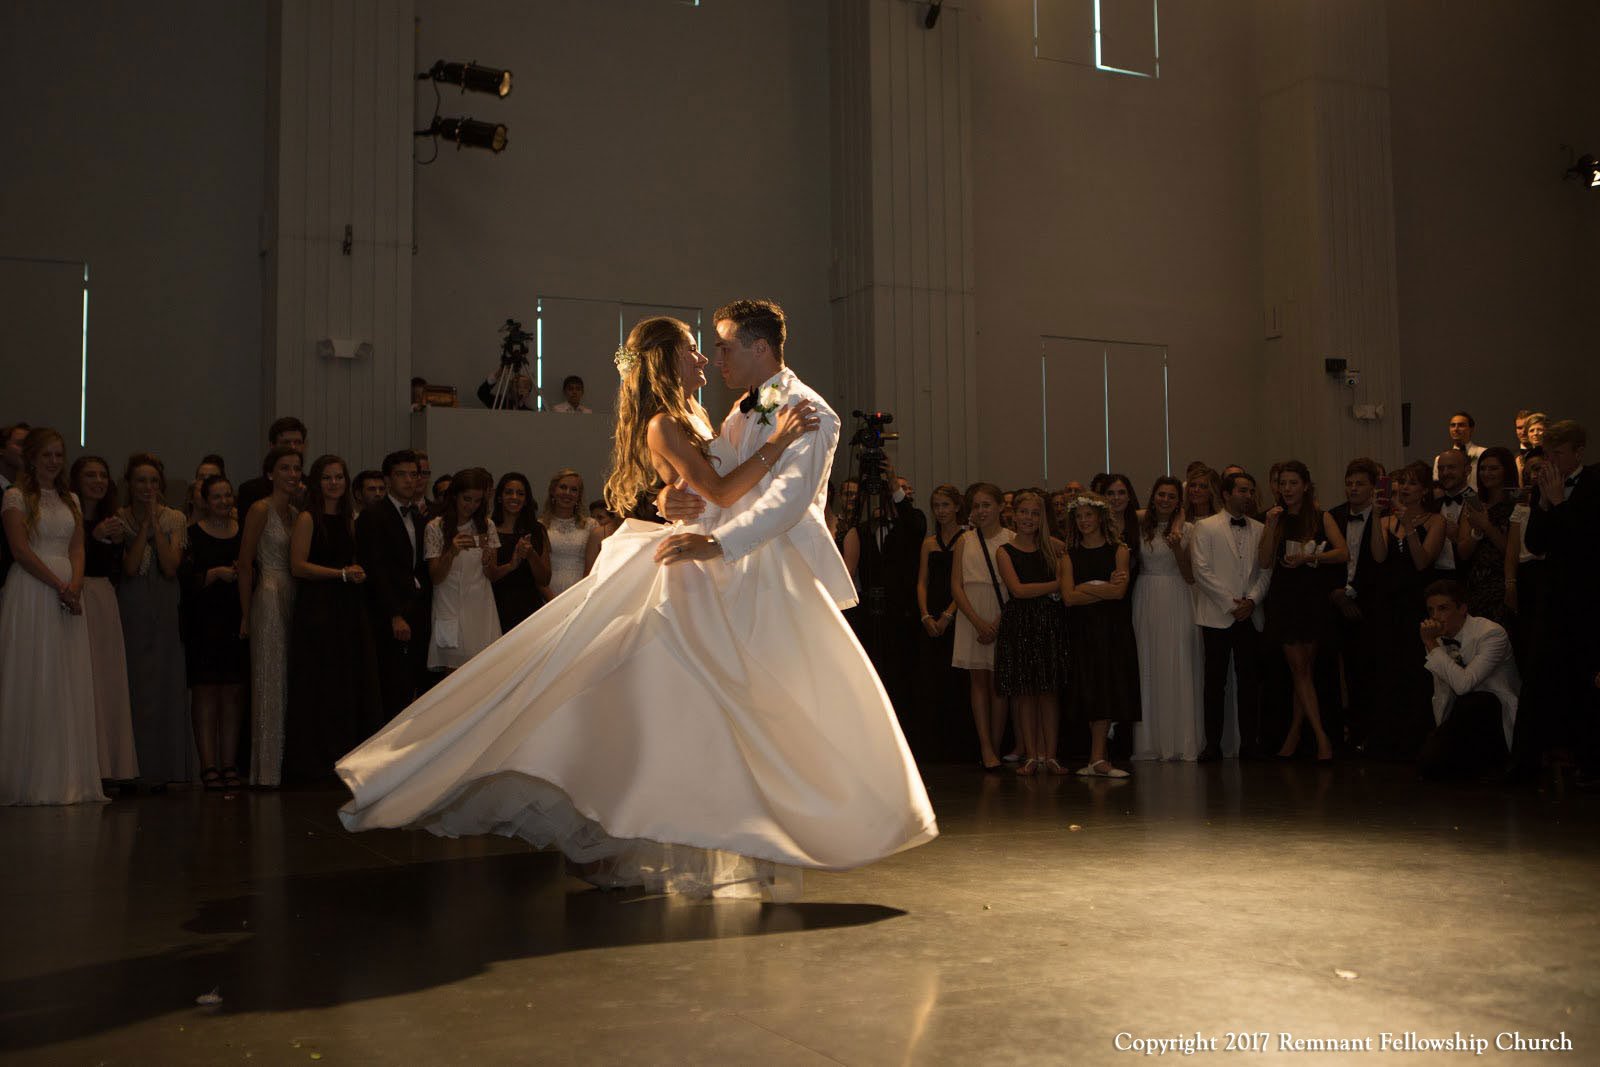 Remnant-Fellowship-Hamilton-Gormsen-Covenant-Wedding-Bride-and-Groom-Dancing